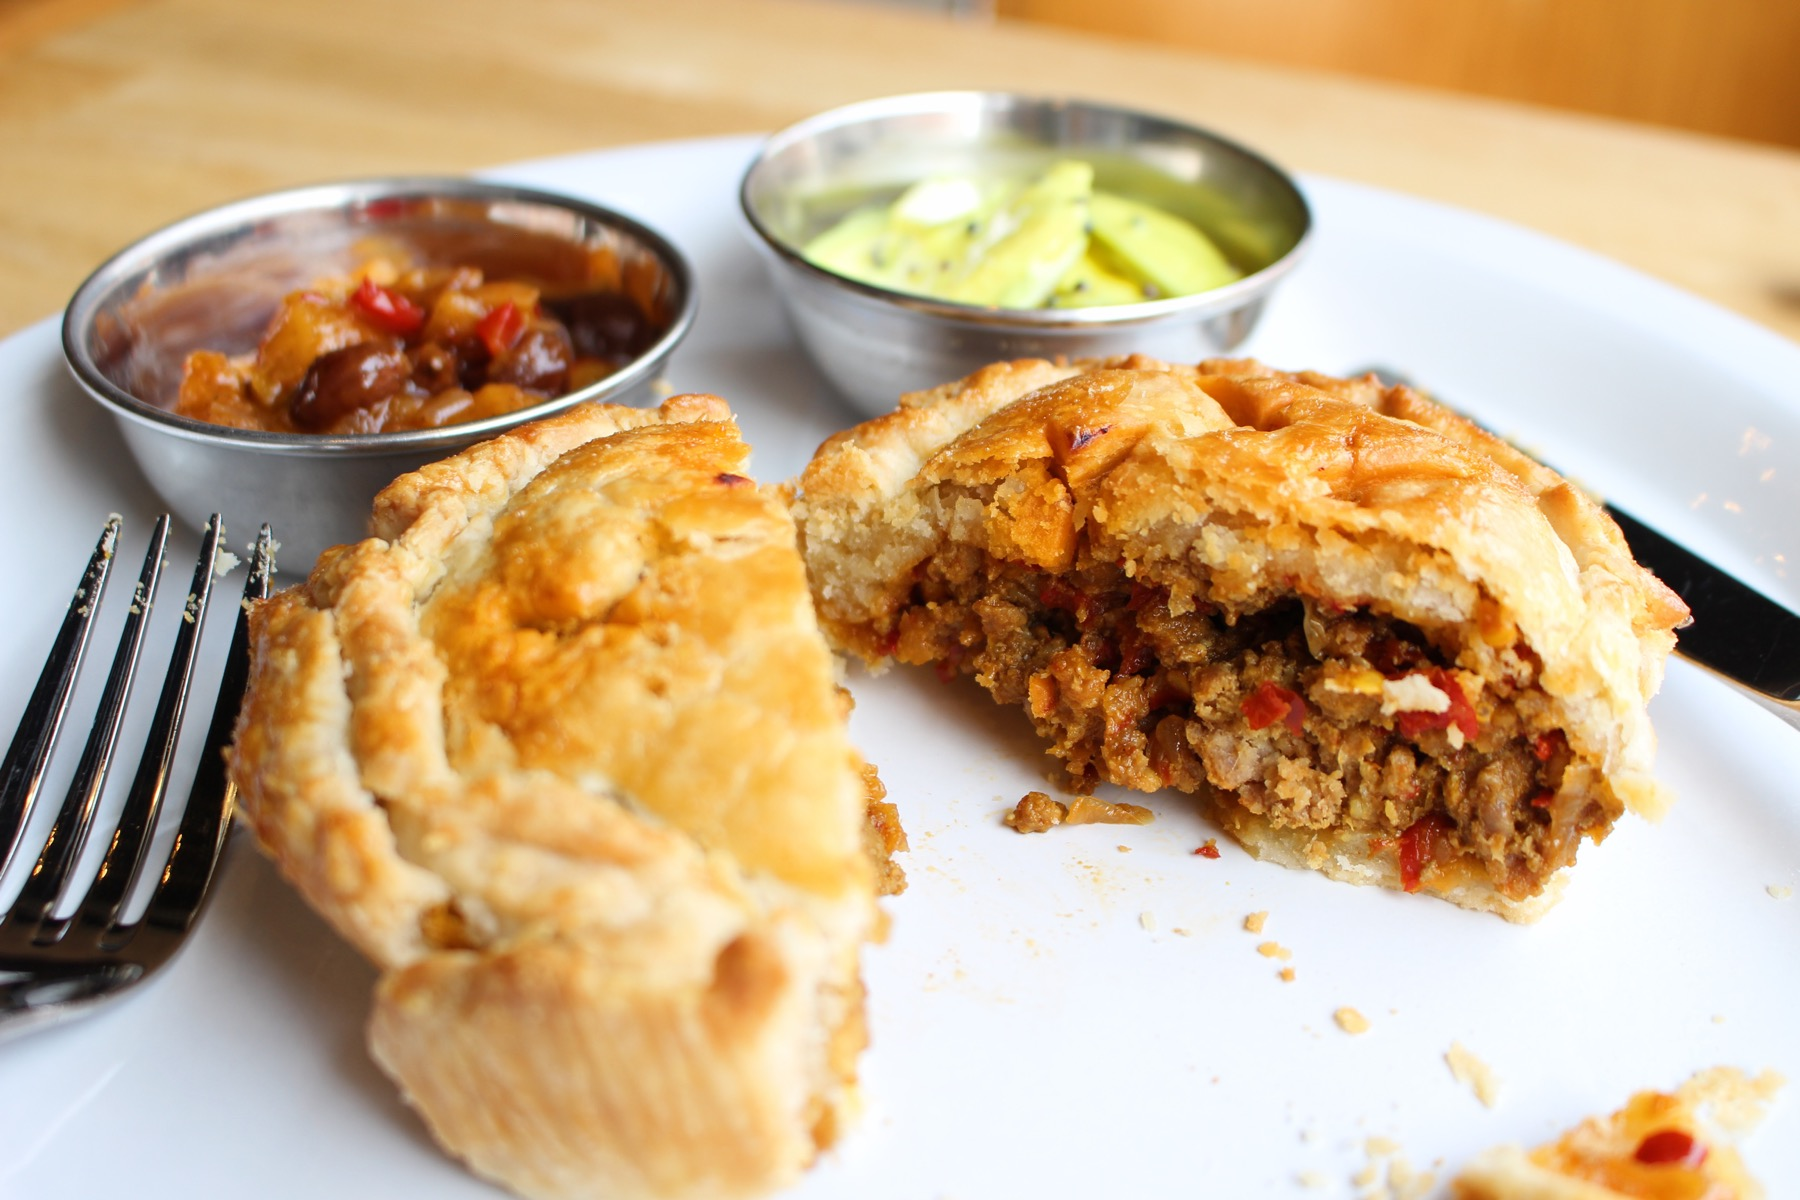 Savory pies from Chiya Chai